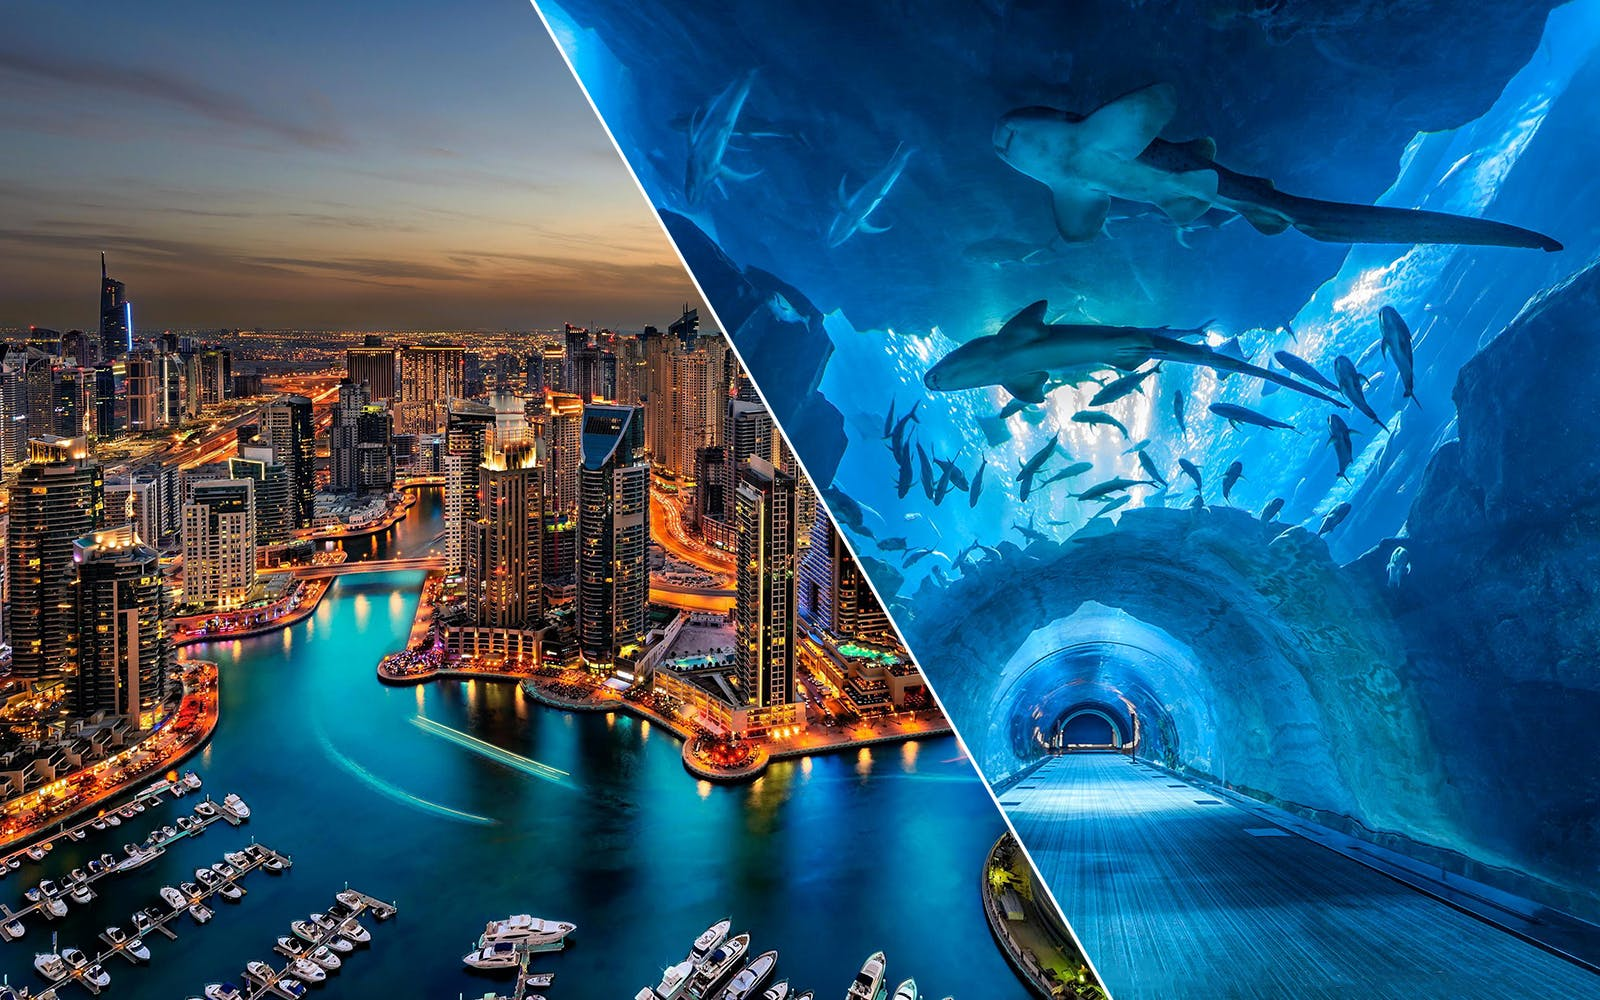 Burj Khalifa + Dubai Aquarium + City Tour Combo